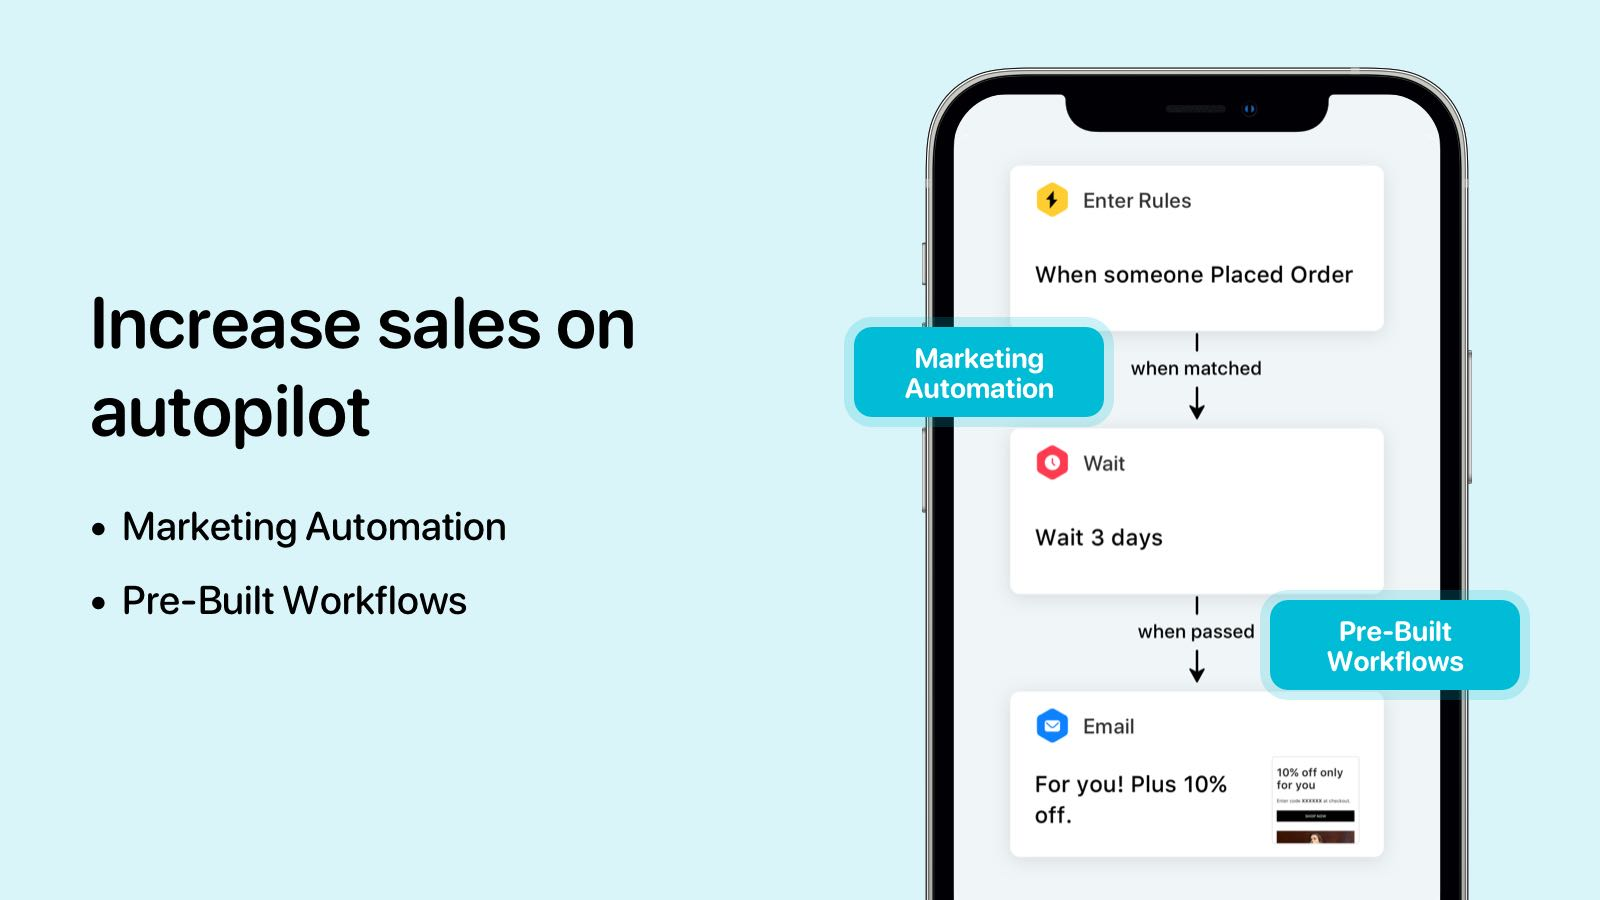 Increase sales with pre-built marketing automation